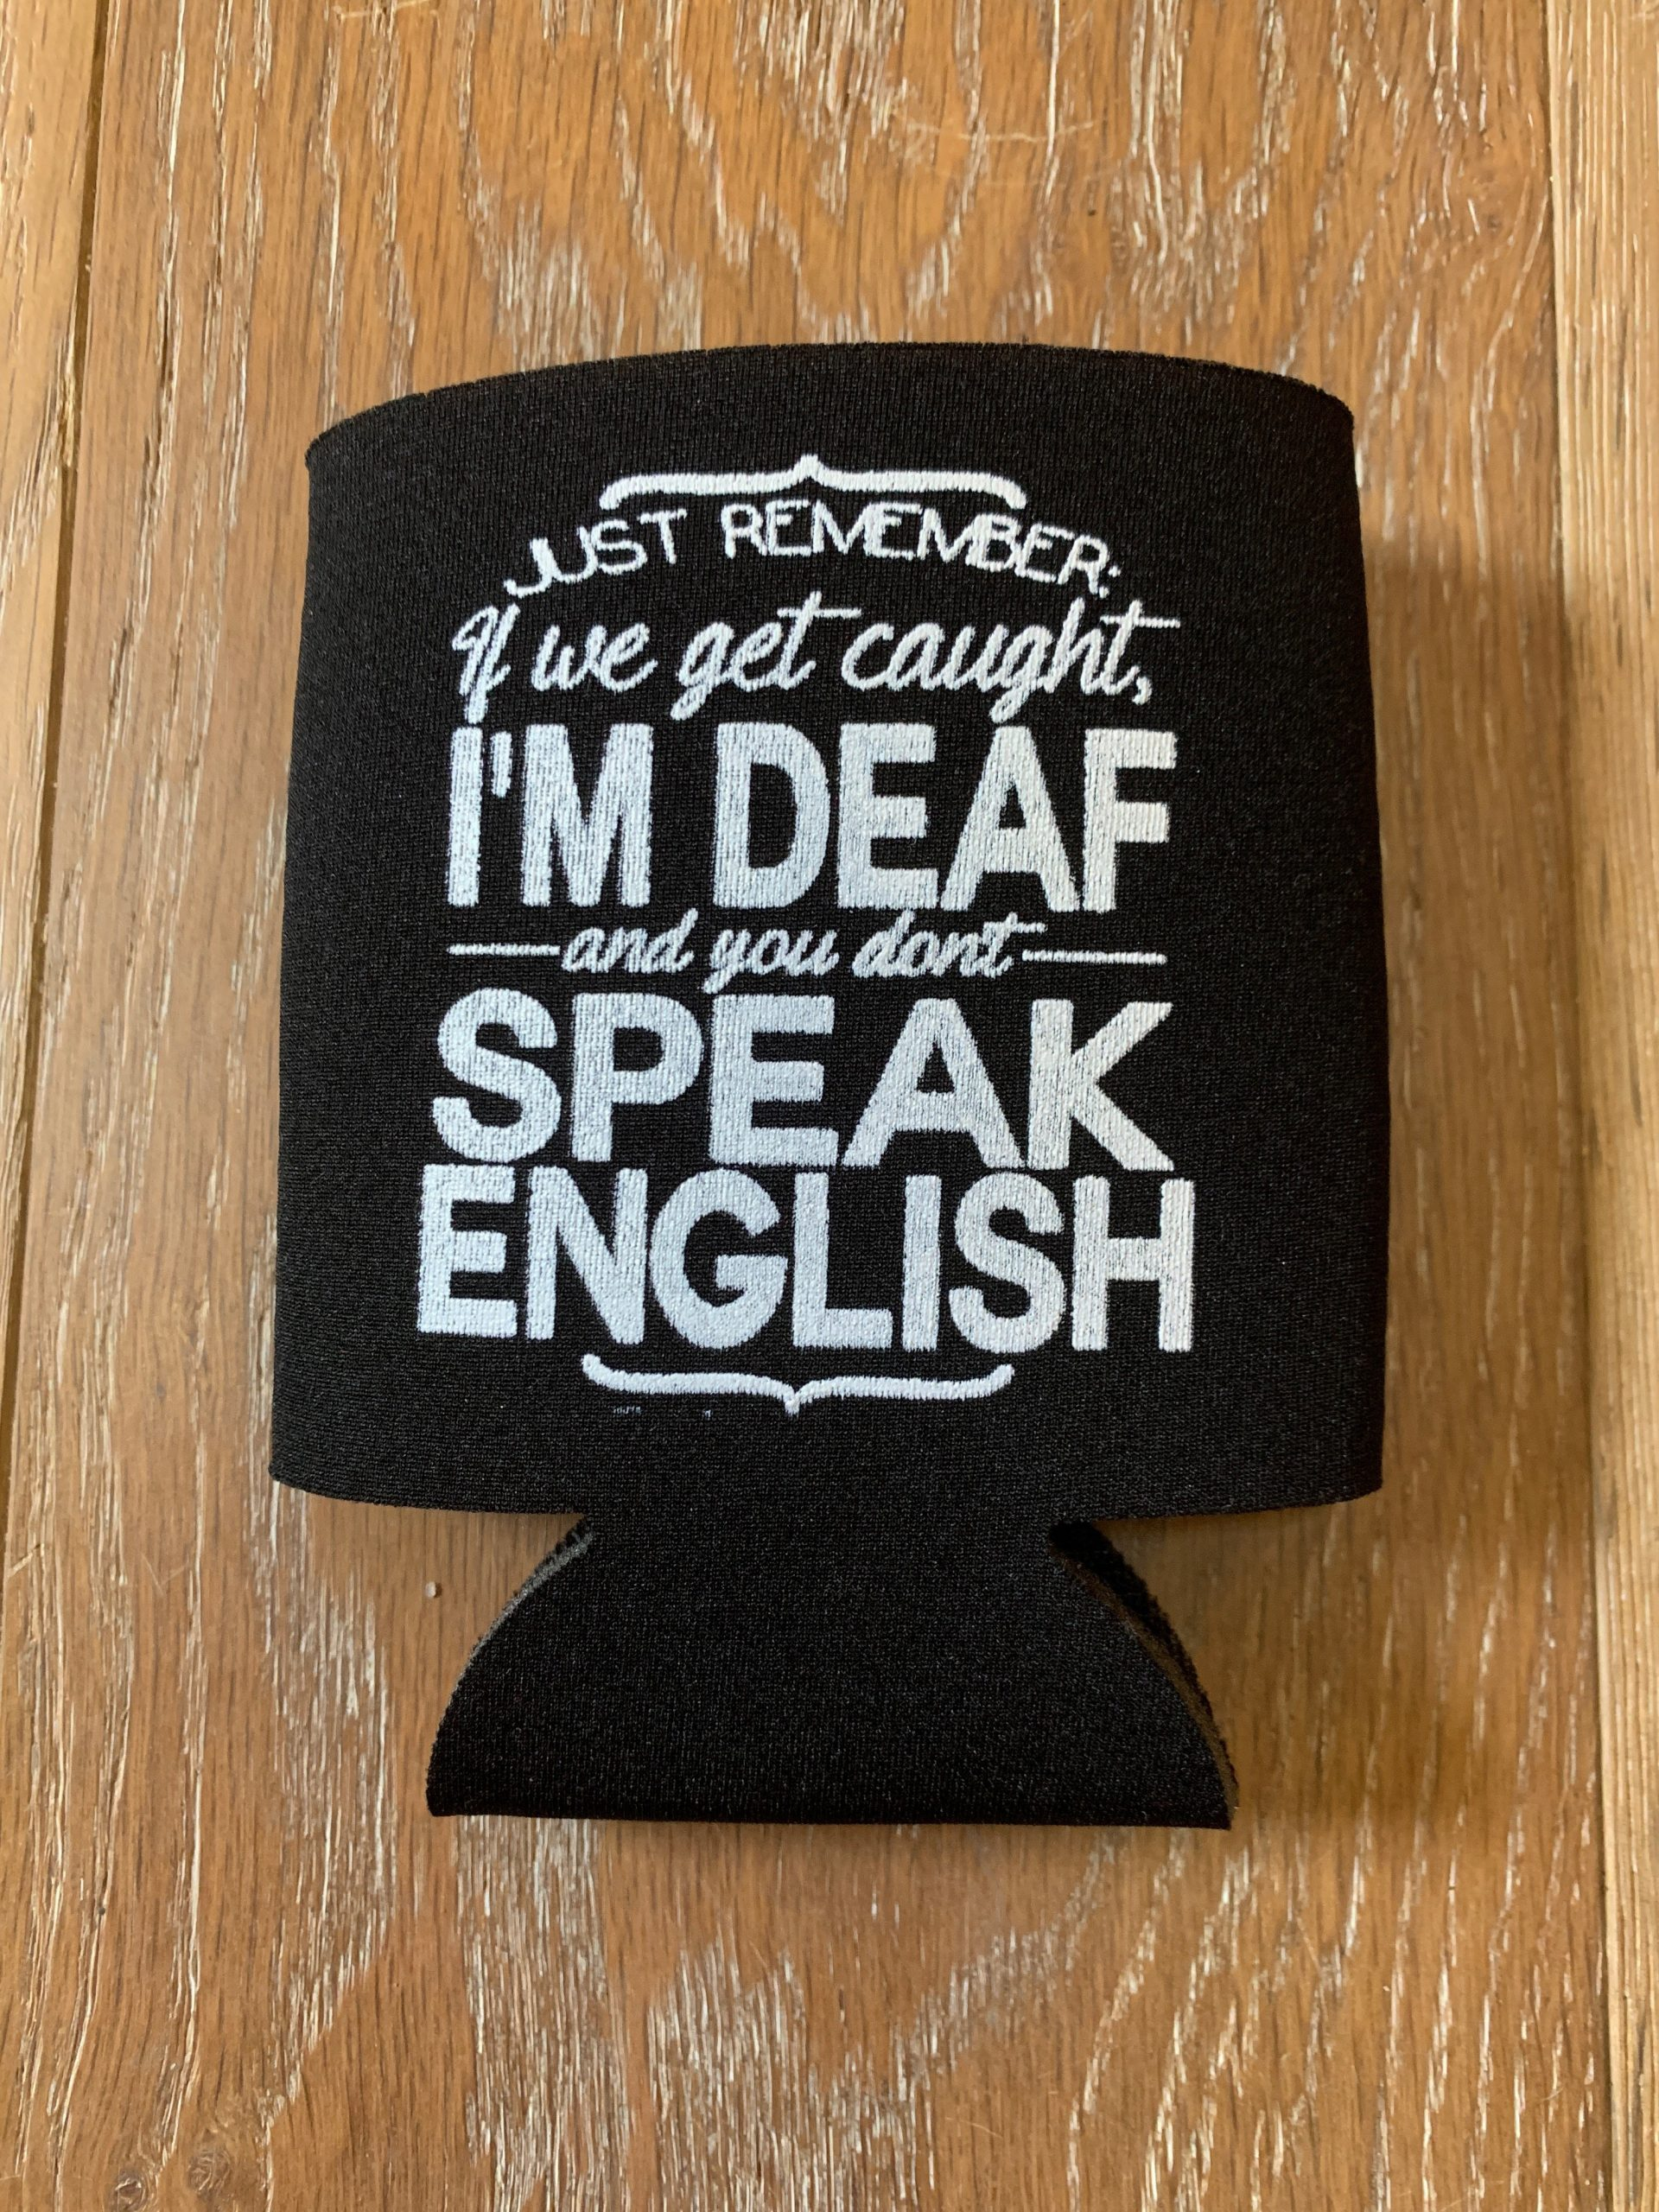 If We Get Caught I'm Deaf and You Don't Speak English on Black Koozie